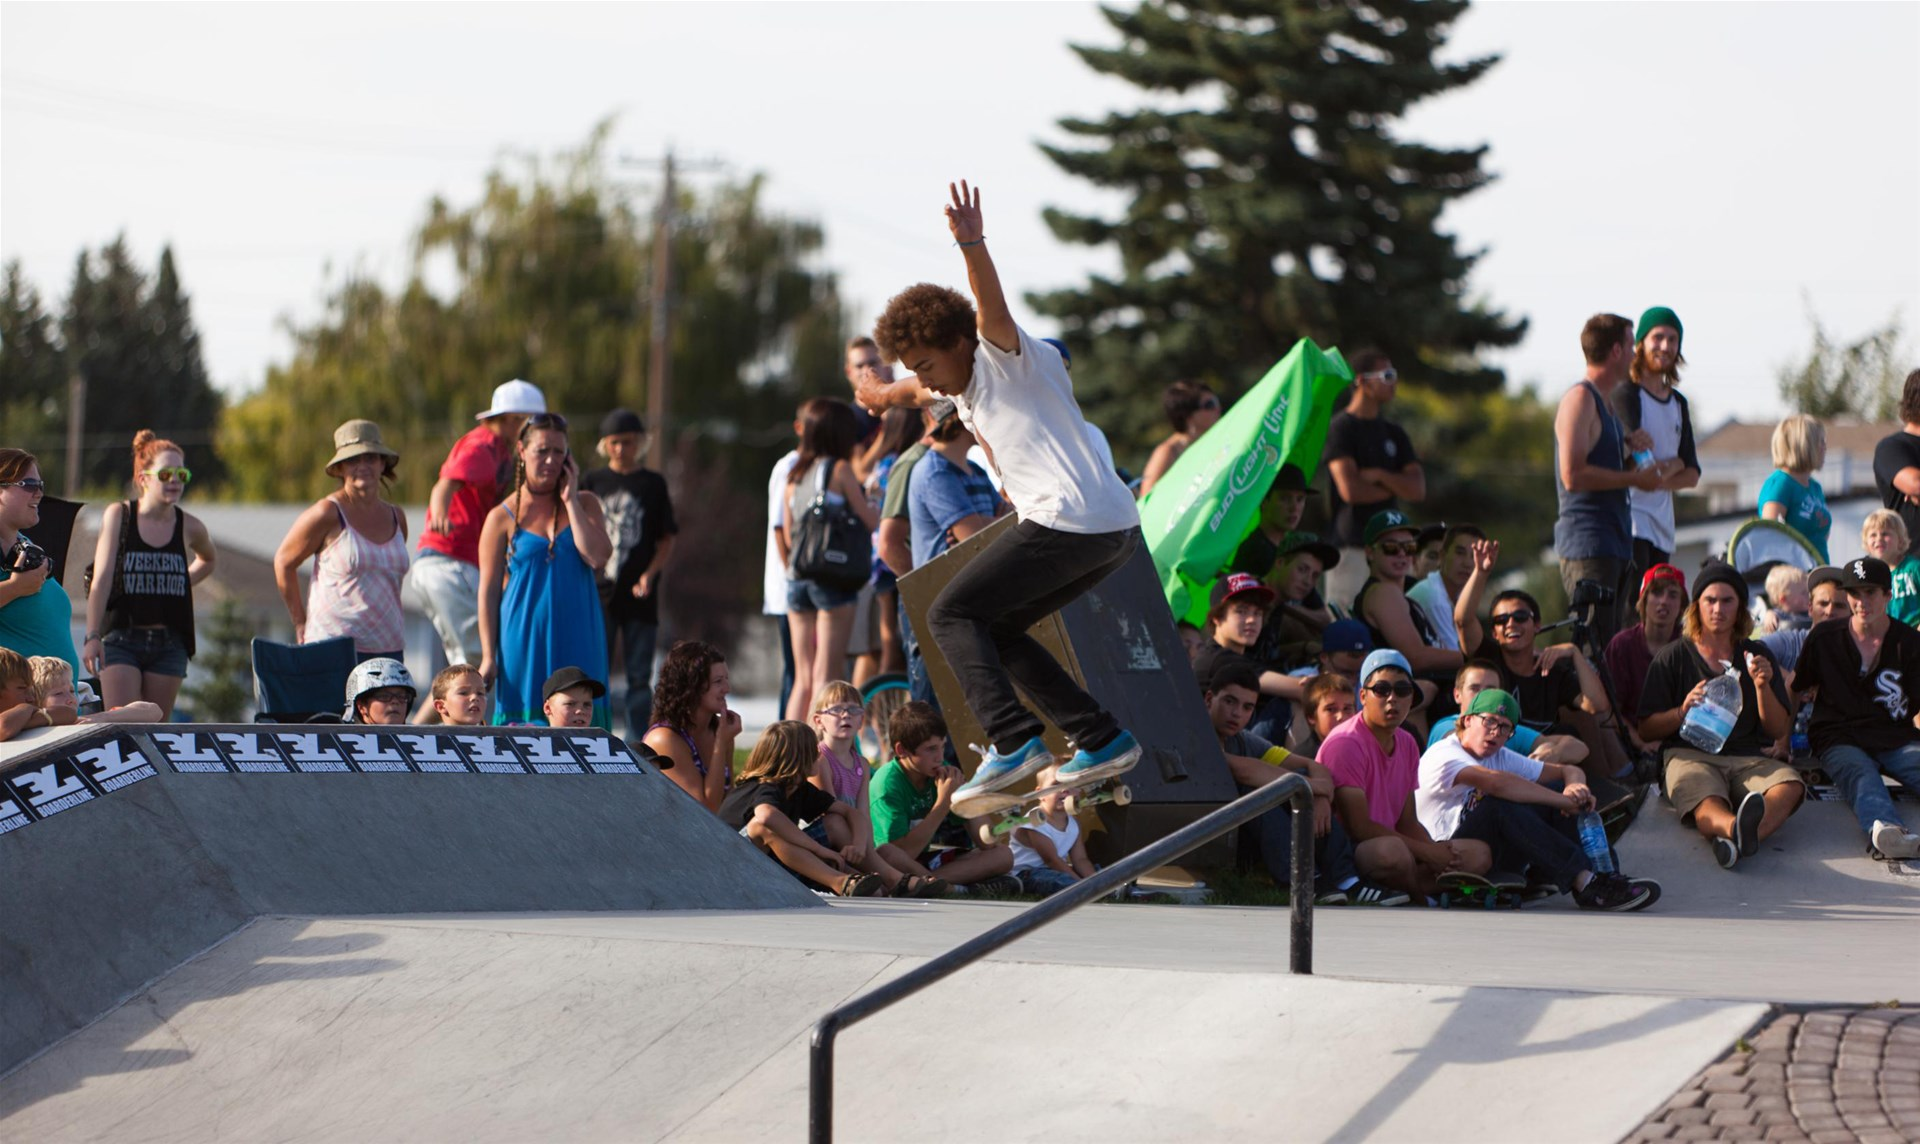 Taber Skate Park offers world class design